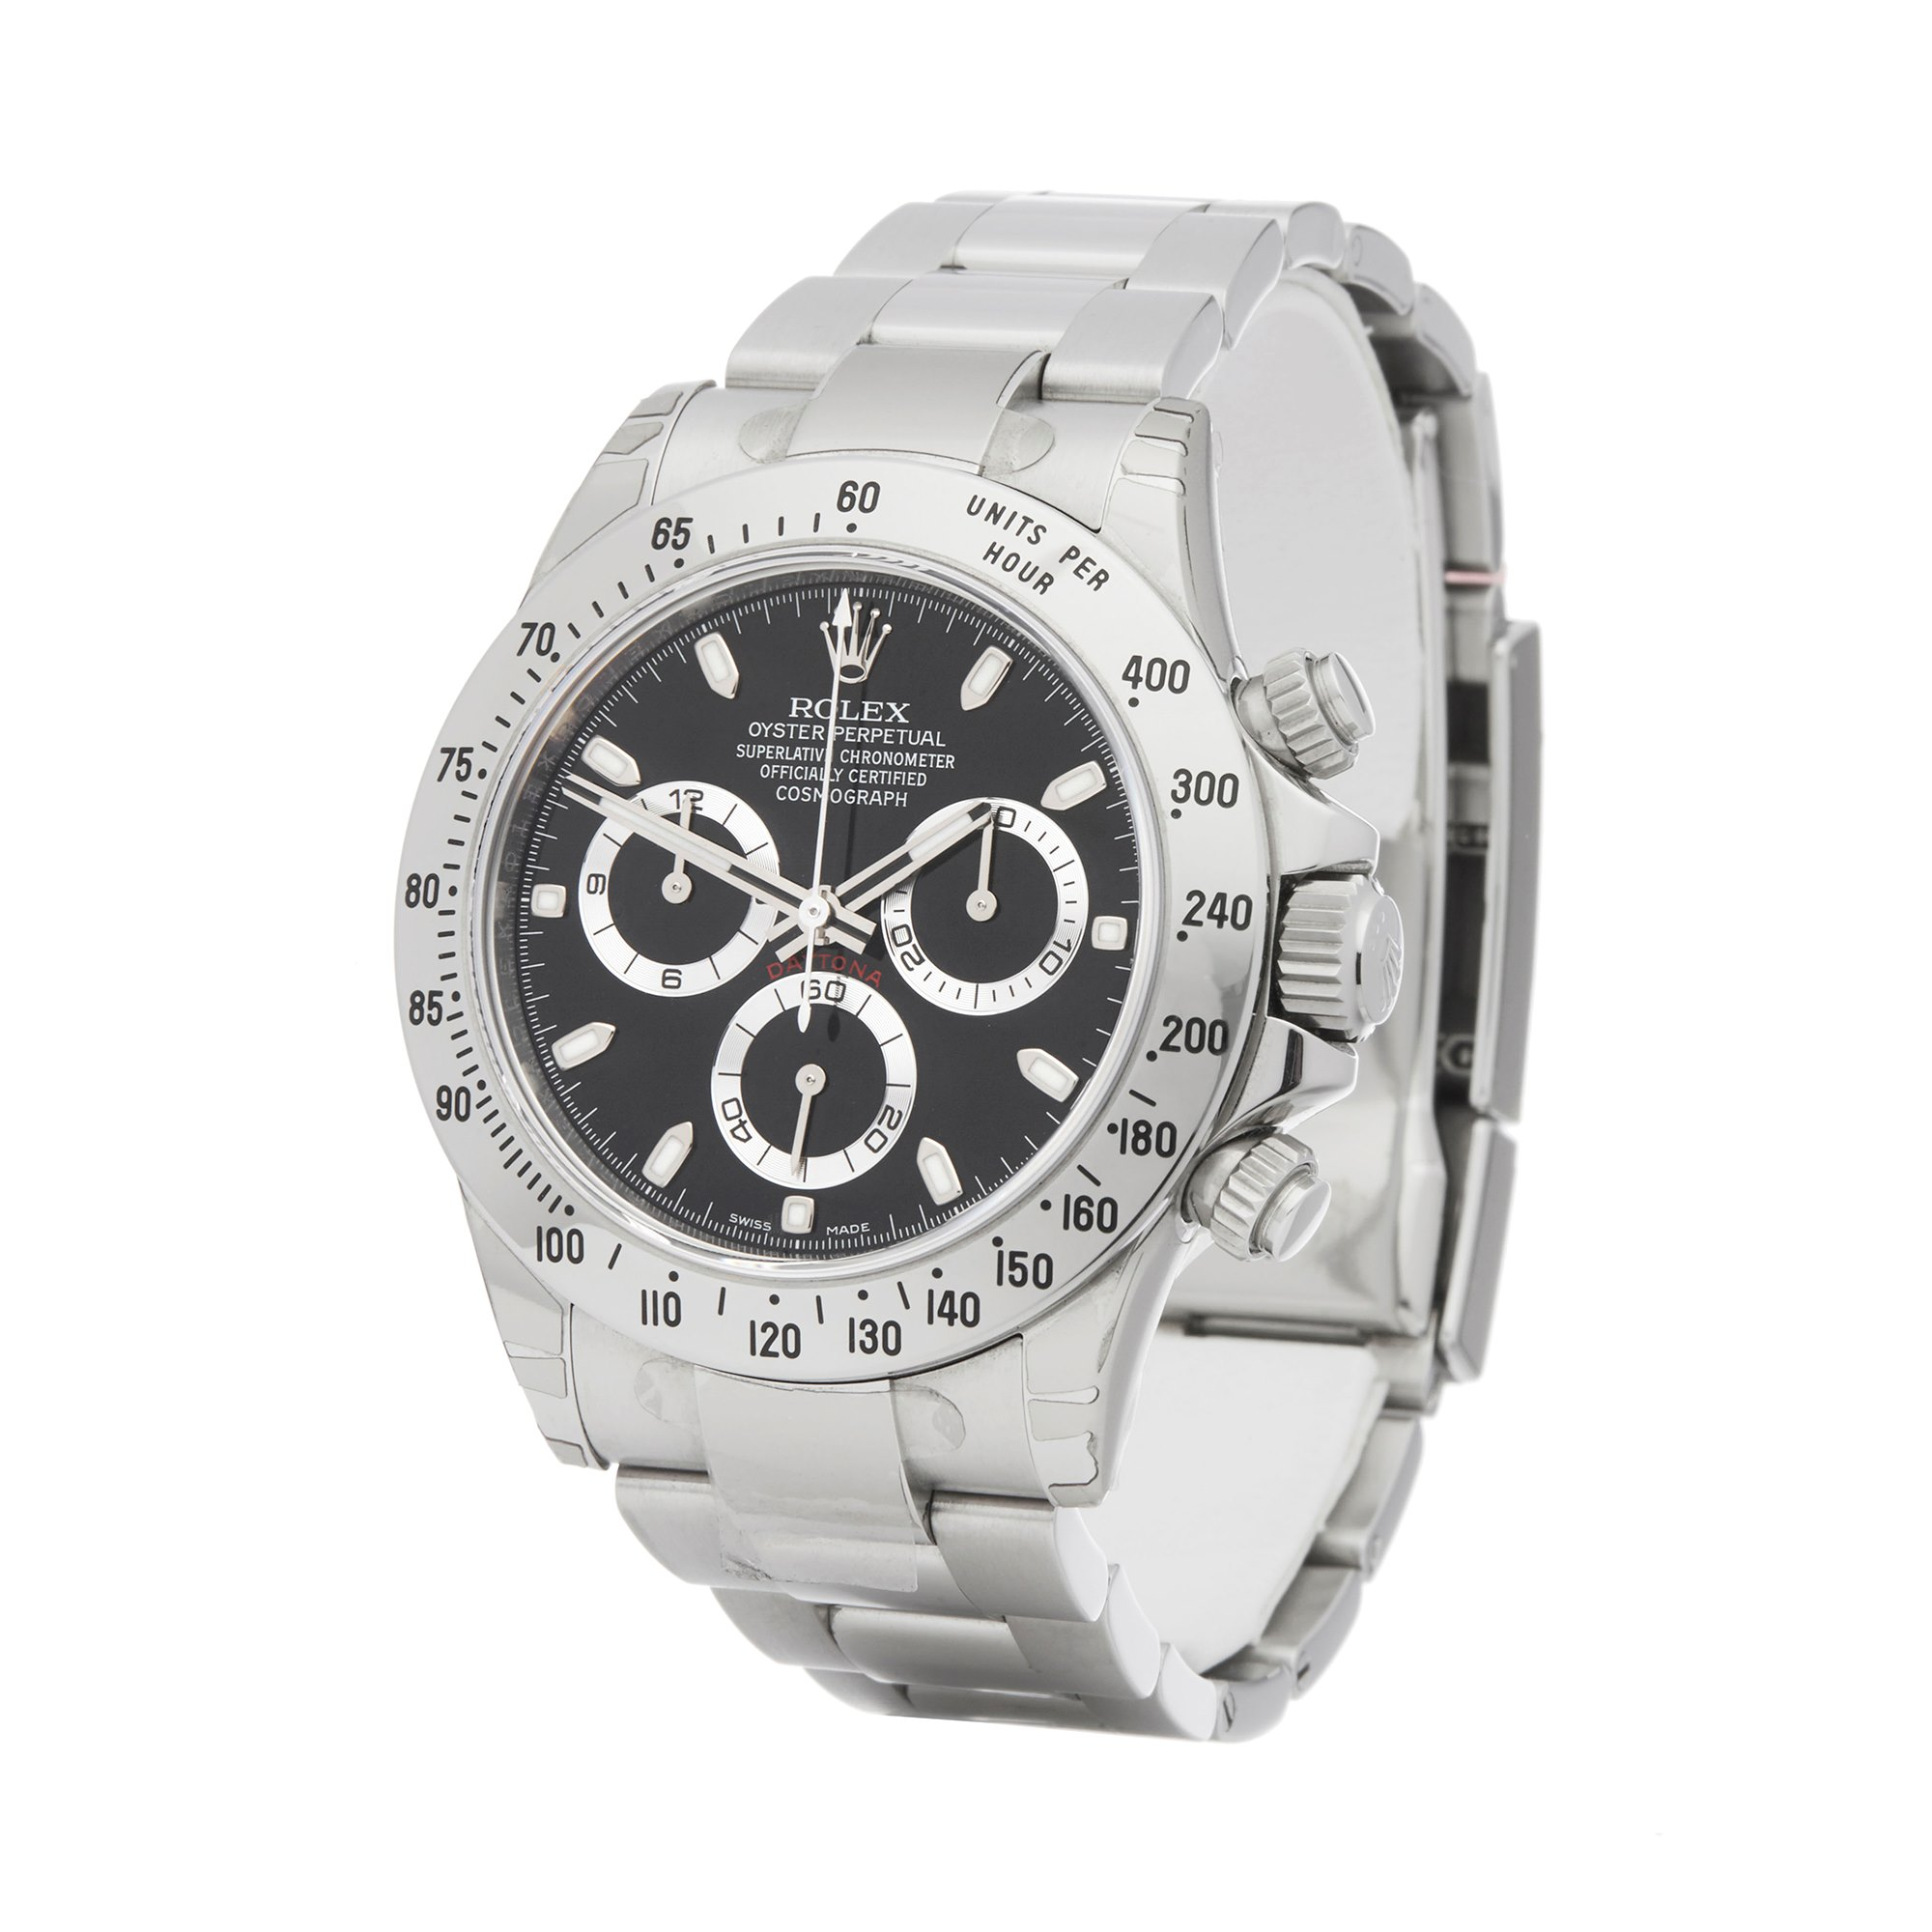 Rolex Daytona Chromalight Chronograph Stickered NOS Stainless Steel 116520